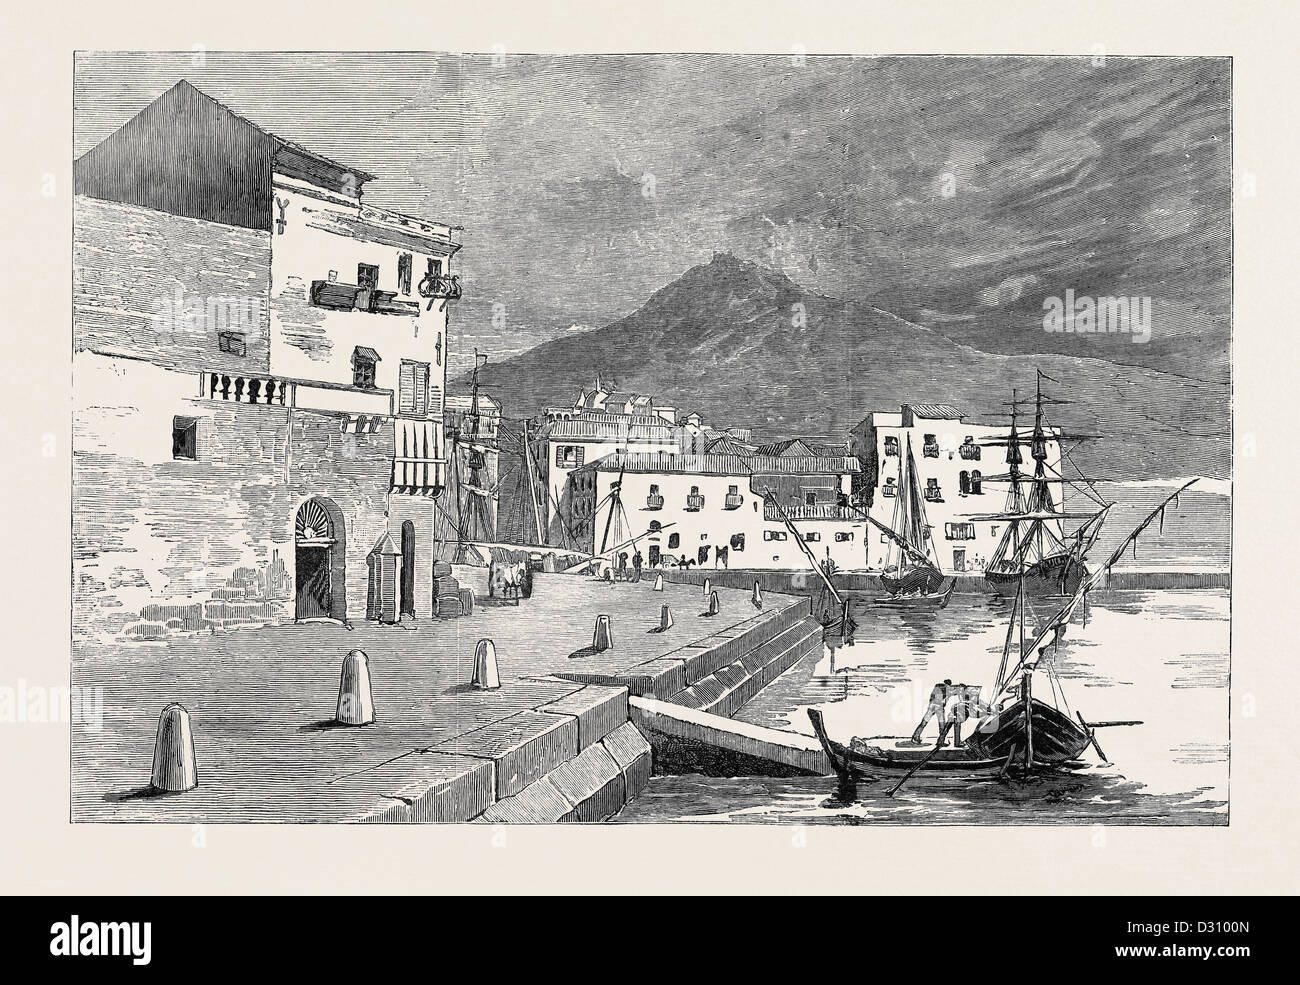 ROUND THE WORLD YACHTING IN THE 'CEYLON'; PALERMO - Stock Image